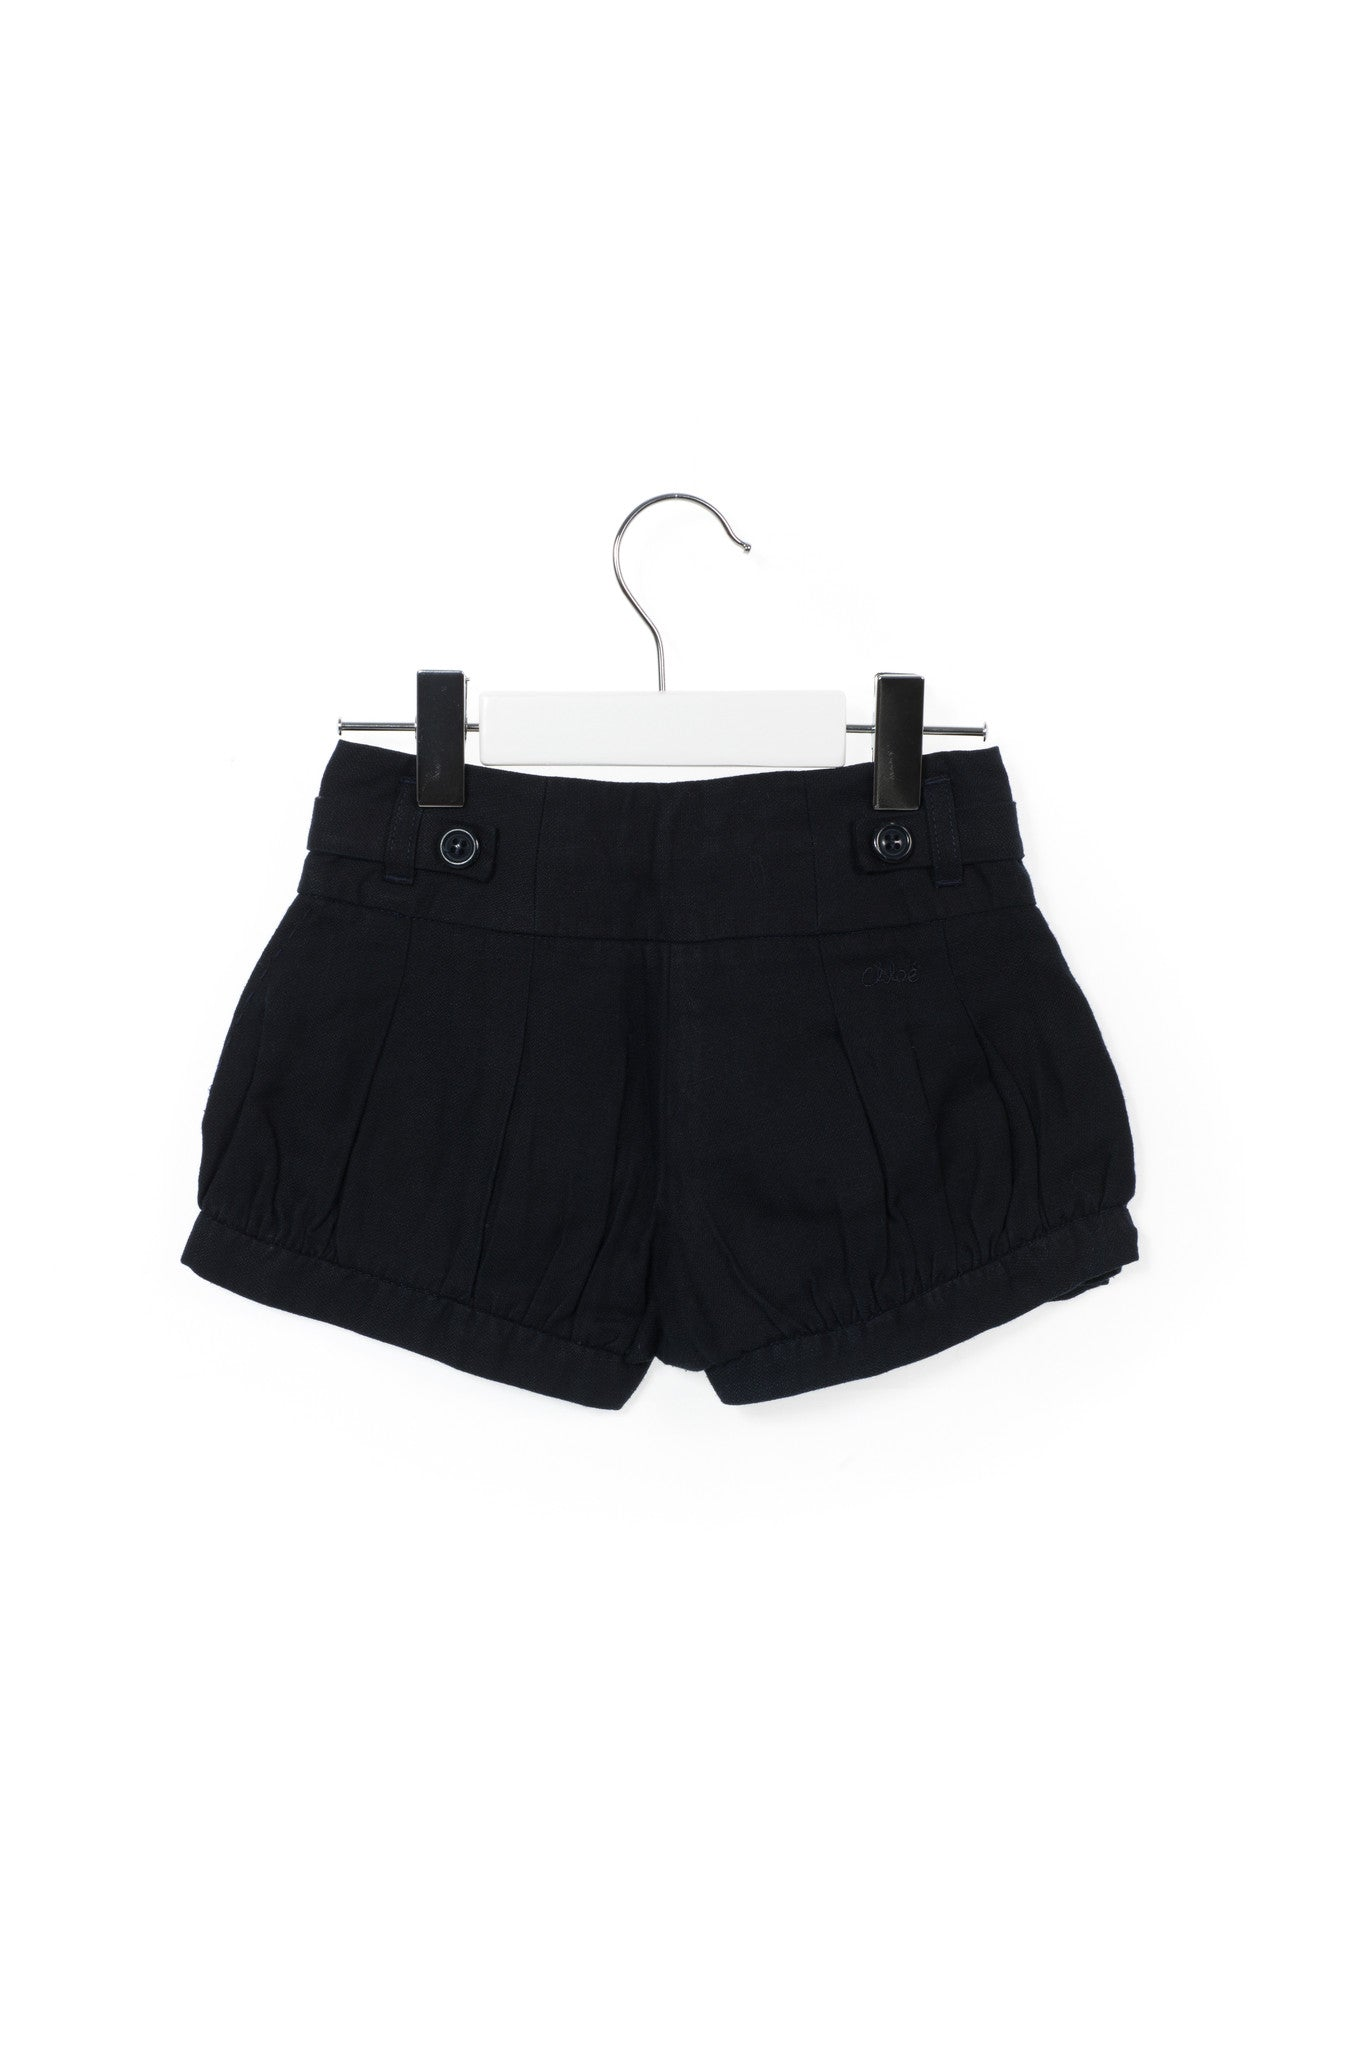 10001083 Chloe Kids~Shorts 4T at Retykle